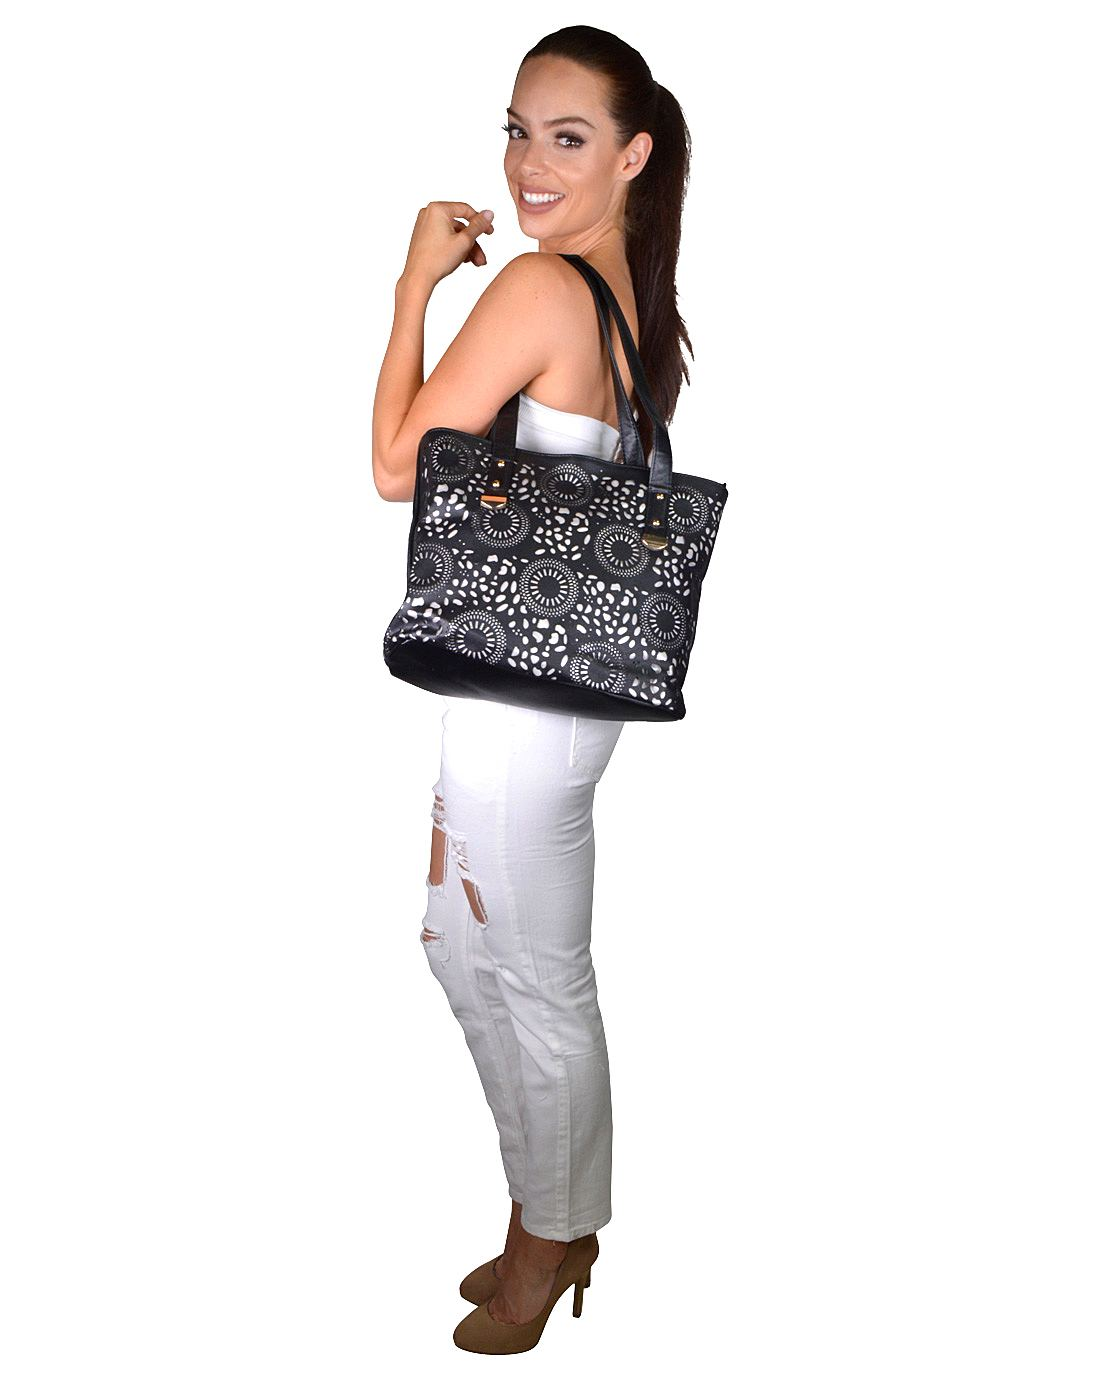 Cut Out Double Strap Tote Bag - id.31724a